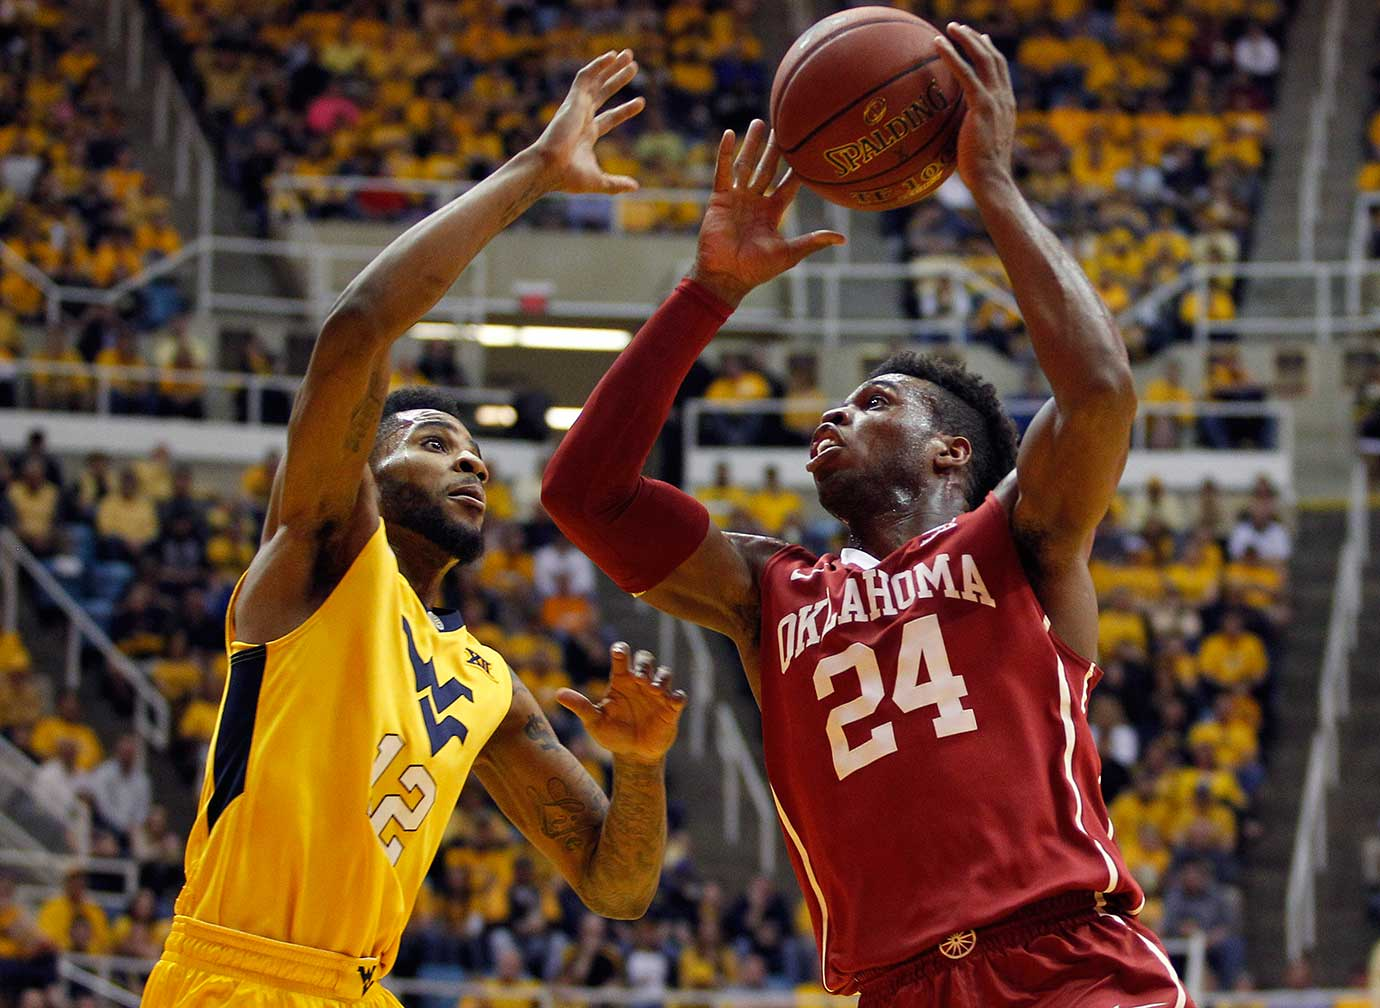 Buddy Hield of the Oklahoma Sooners shoots against Tarik Phillip of the West Virginia Mountaineers.